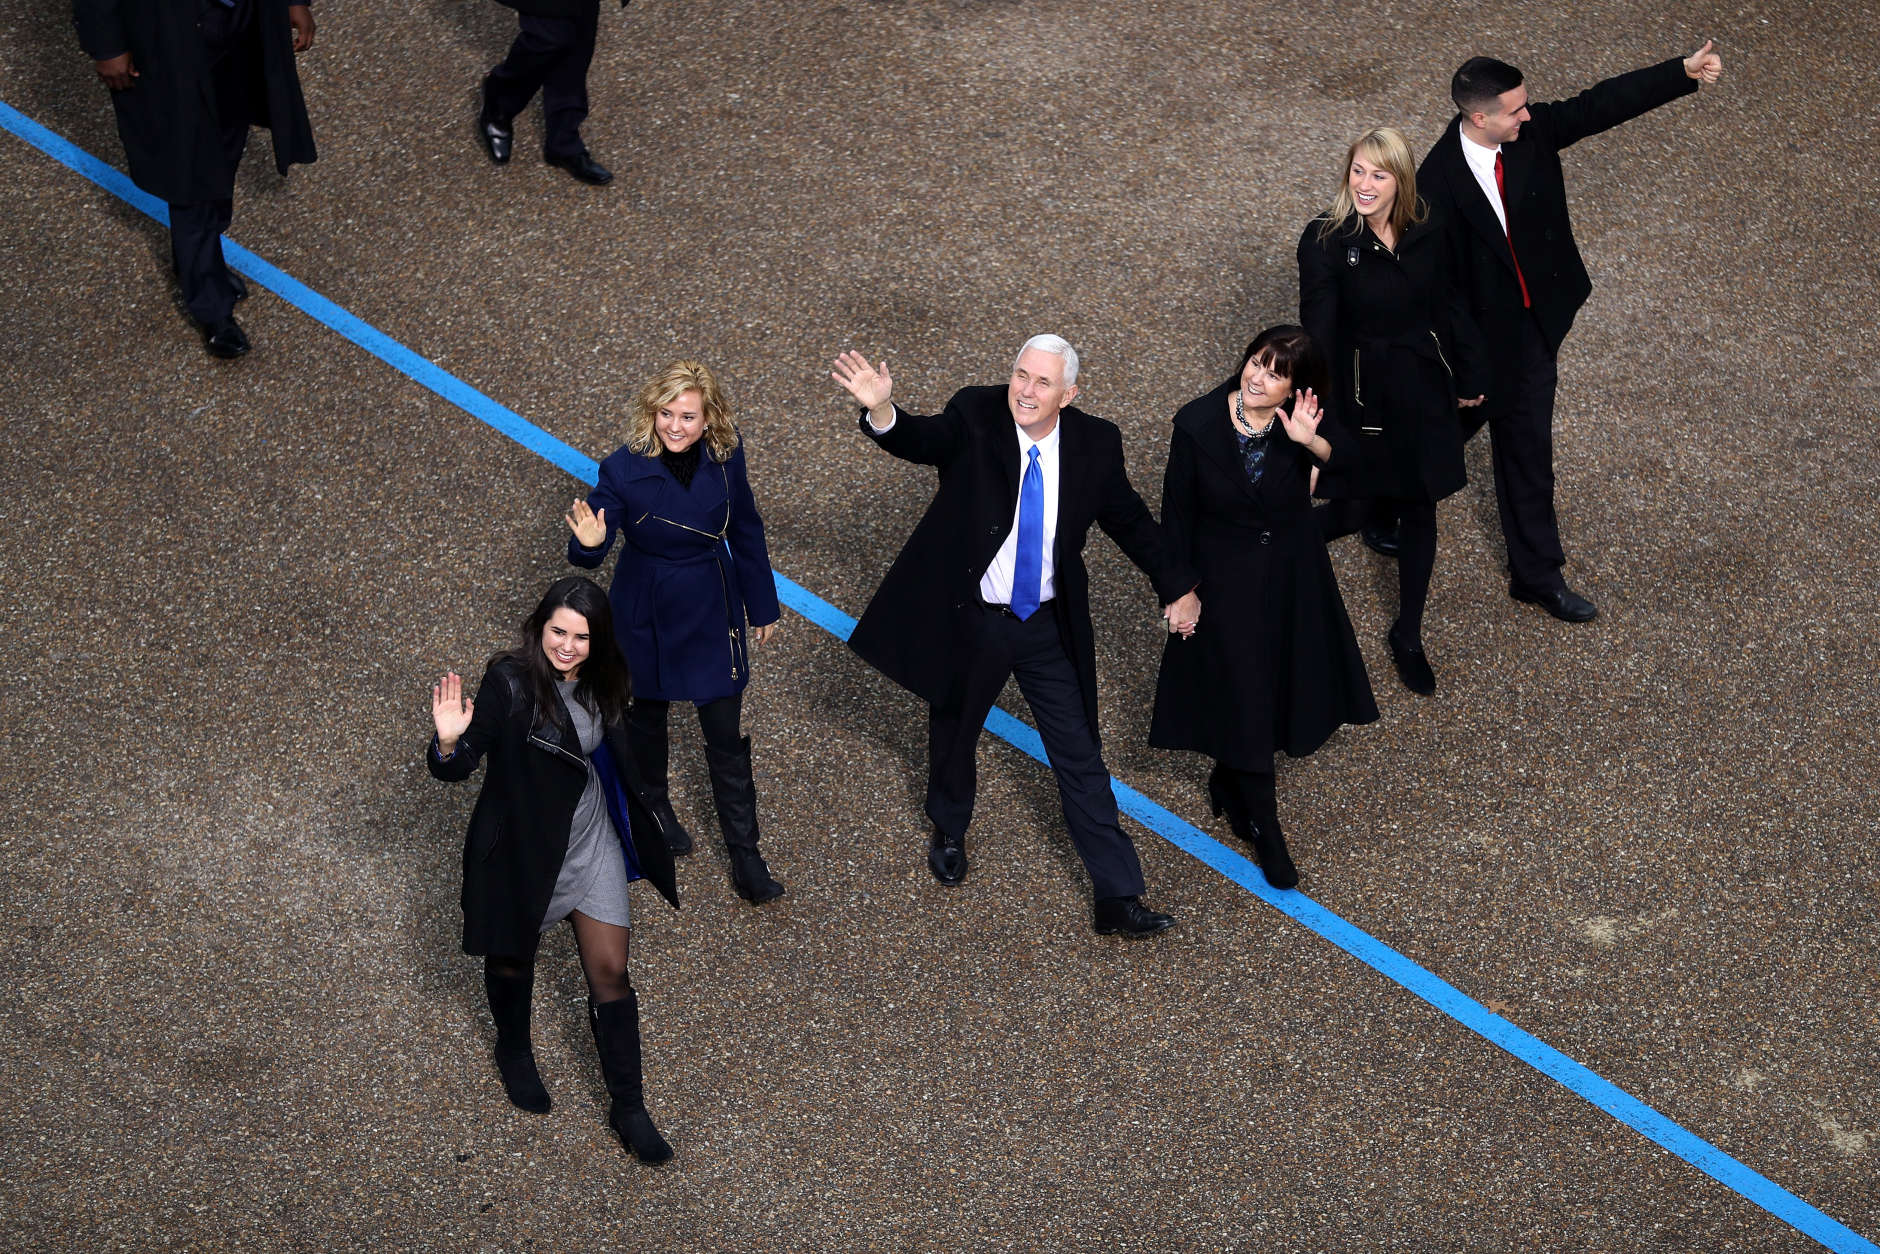 WASHINGTON, DC - JANUARY 20:  U.S. Vice President Mike Pence (3L) waves to supporters as he walks the parade route with his wife Karen Pence (3R) and their daughters Audrey Pence (L) and Charlotte Pence (2L) and son Michael Pence (R) during the Inaugural Parade on January 20, 2017 in Washington, DC. Donald J. Trump was sworn in today as the 45th president of the United States.  (Photo by Joe Raedle/Getty Images)